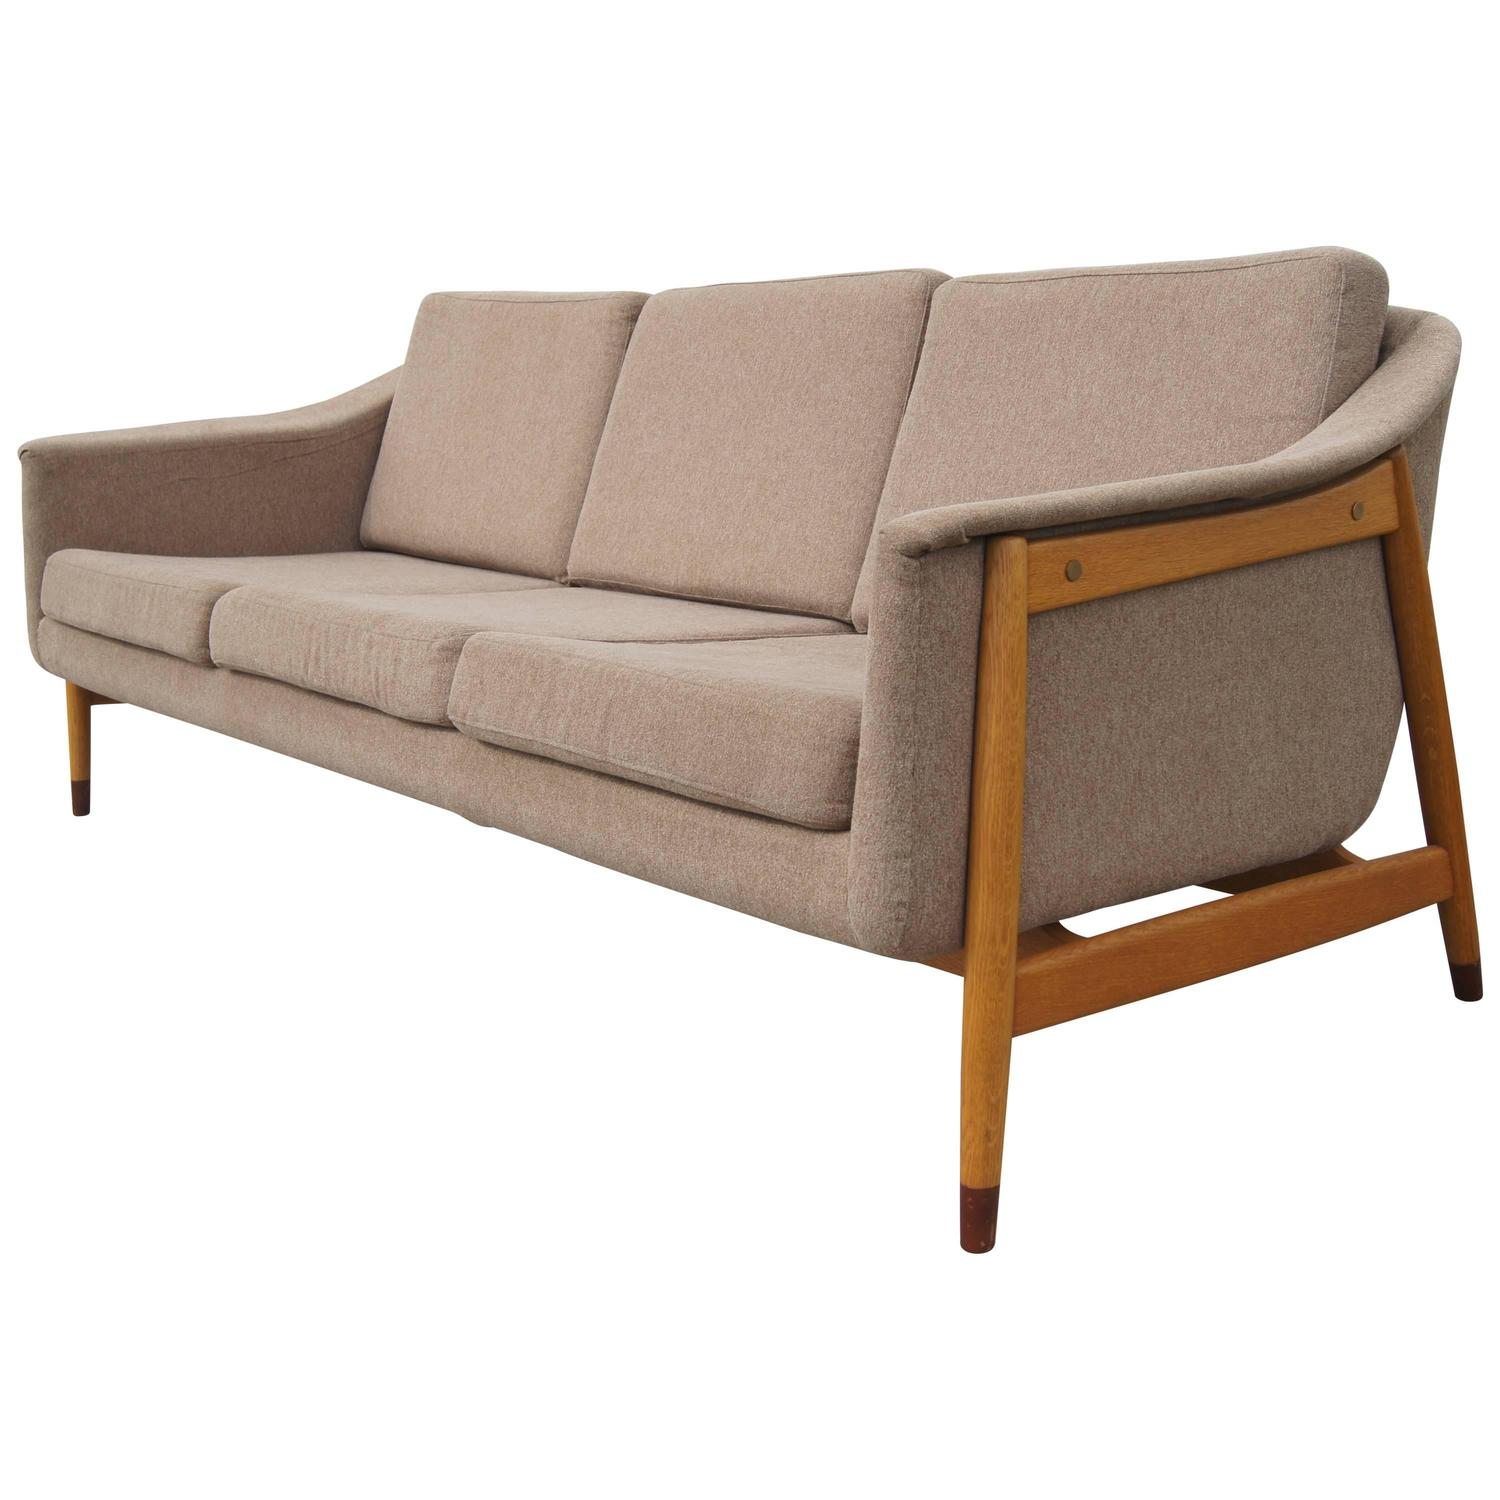 Three Seat Swedish Sofa By Folke Ohlsson For Dux At 1stdibs